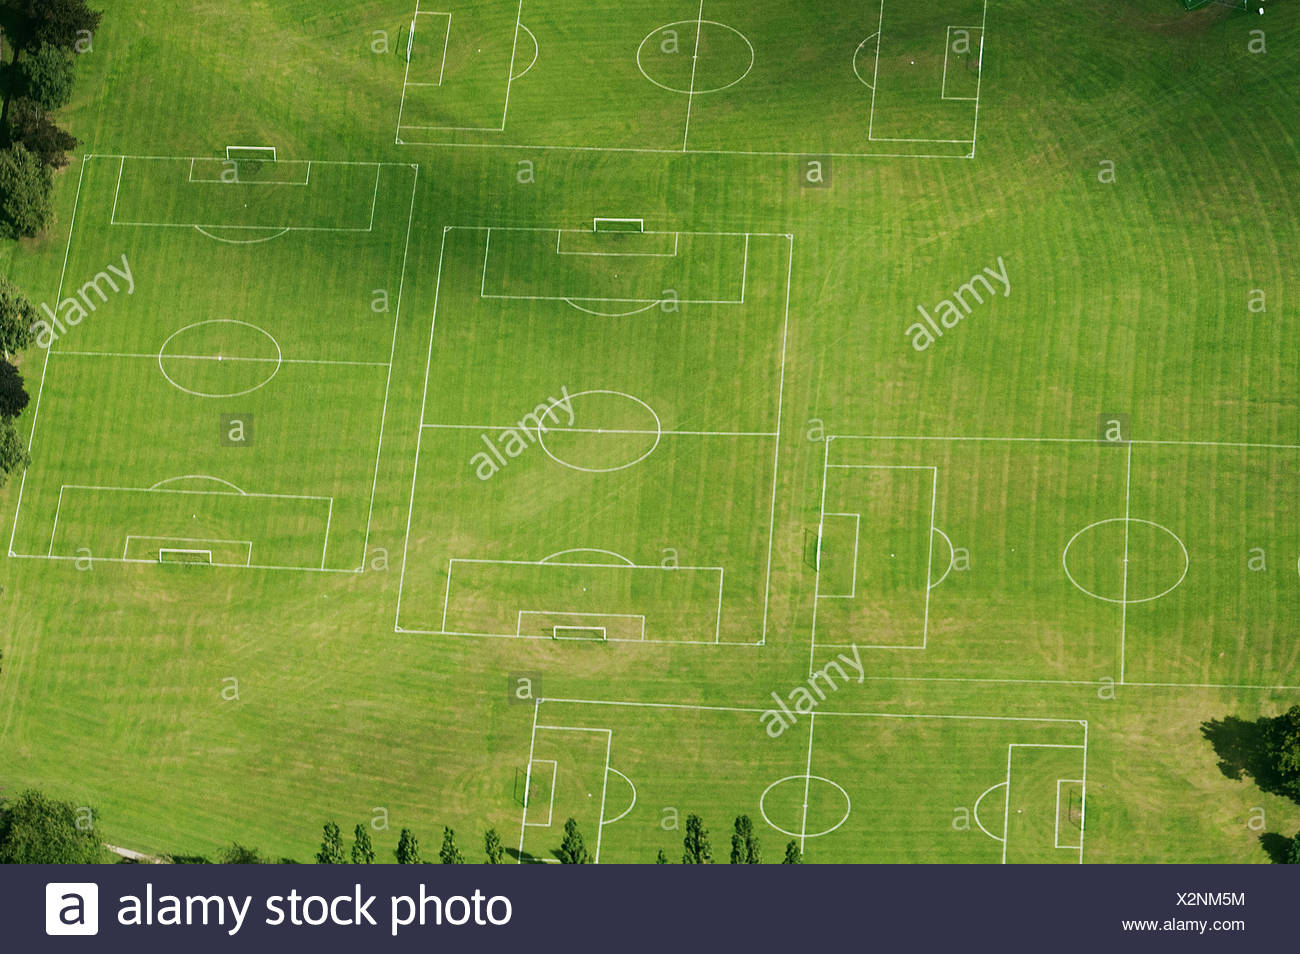 grass field aerial. Aerial View Of Soccer Pitches In Field - Stock Image Grass R